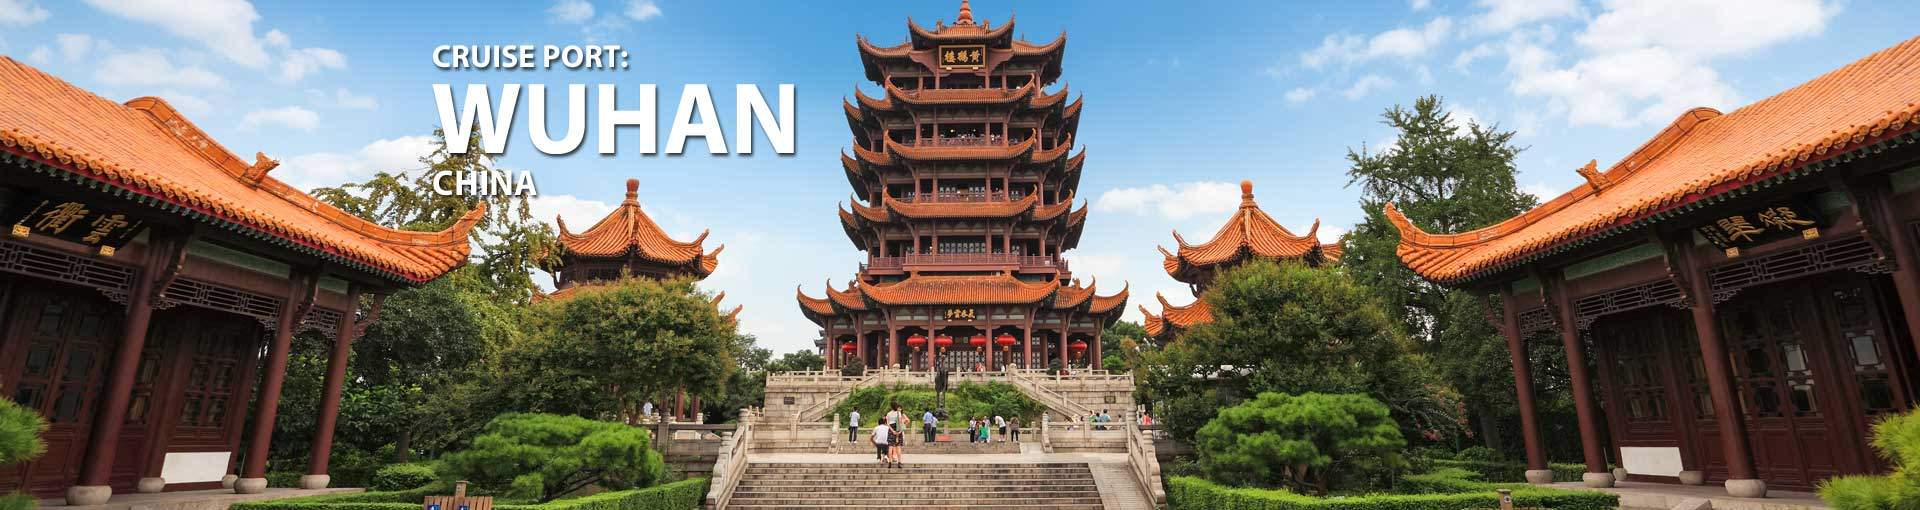 Cruises to Wuhan, China